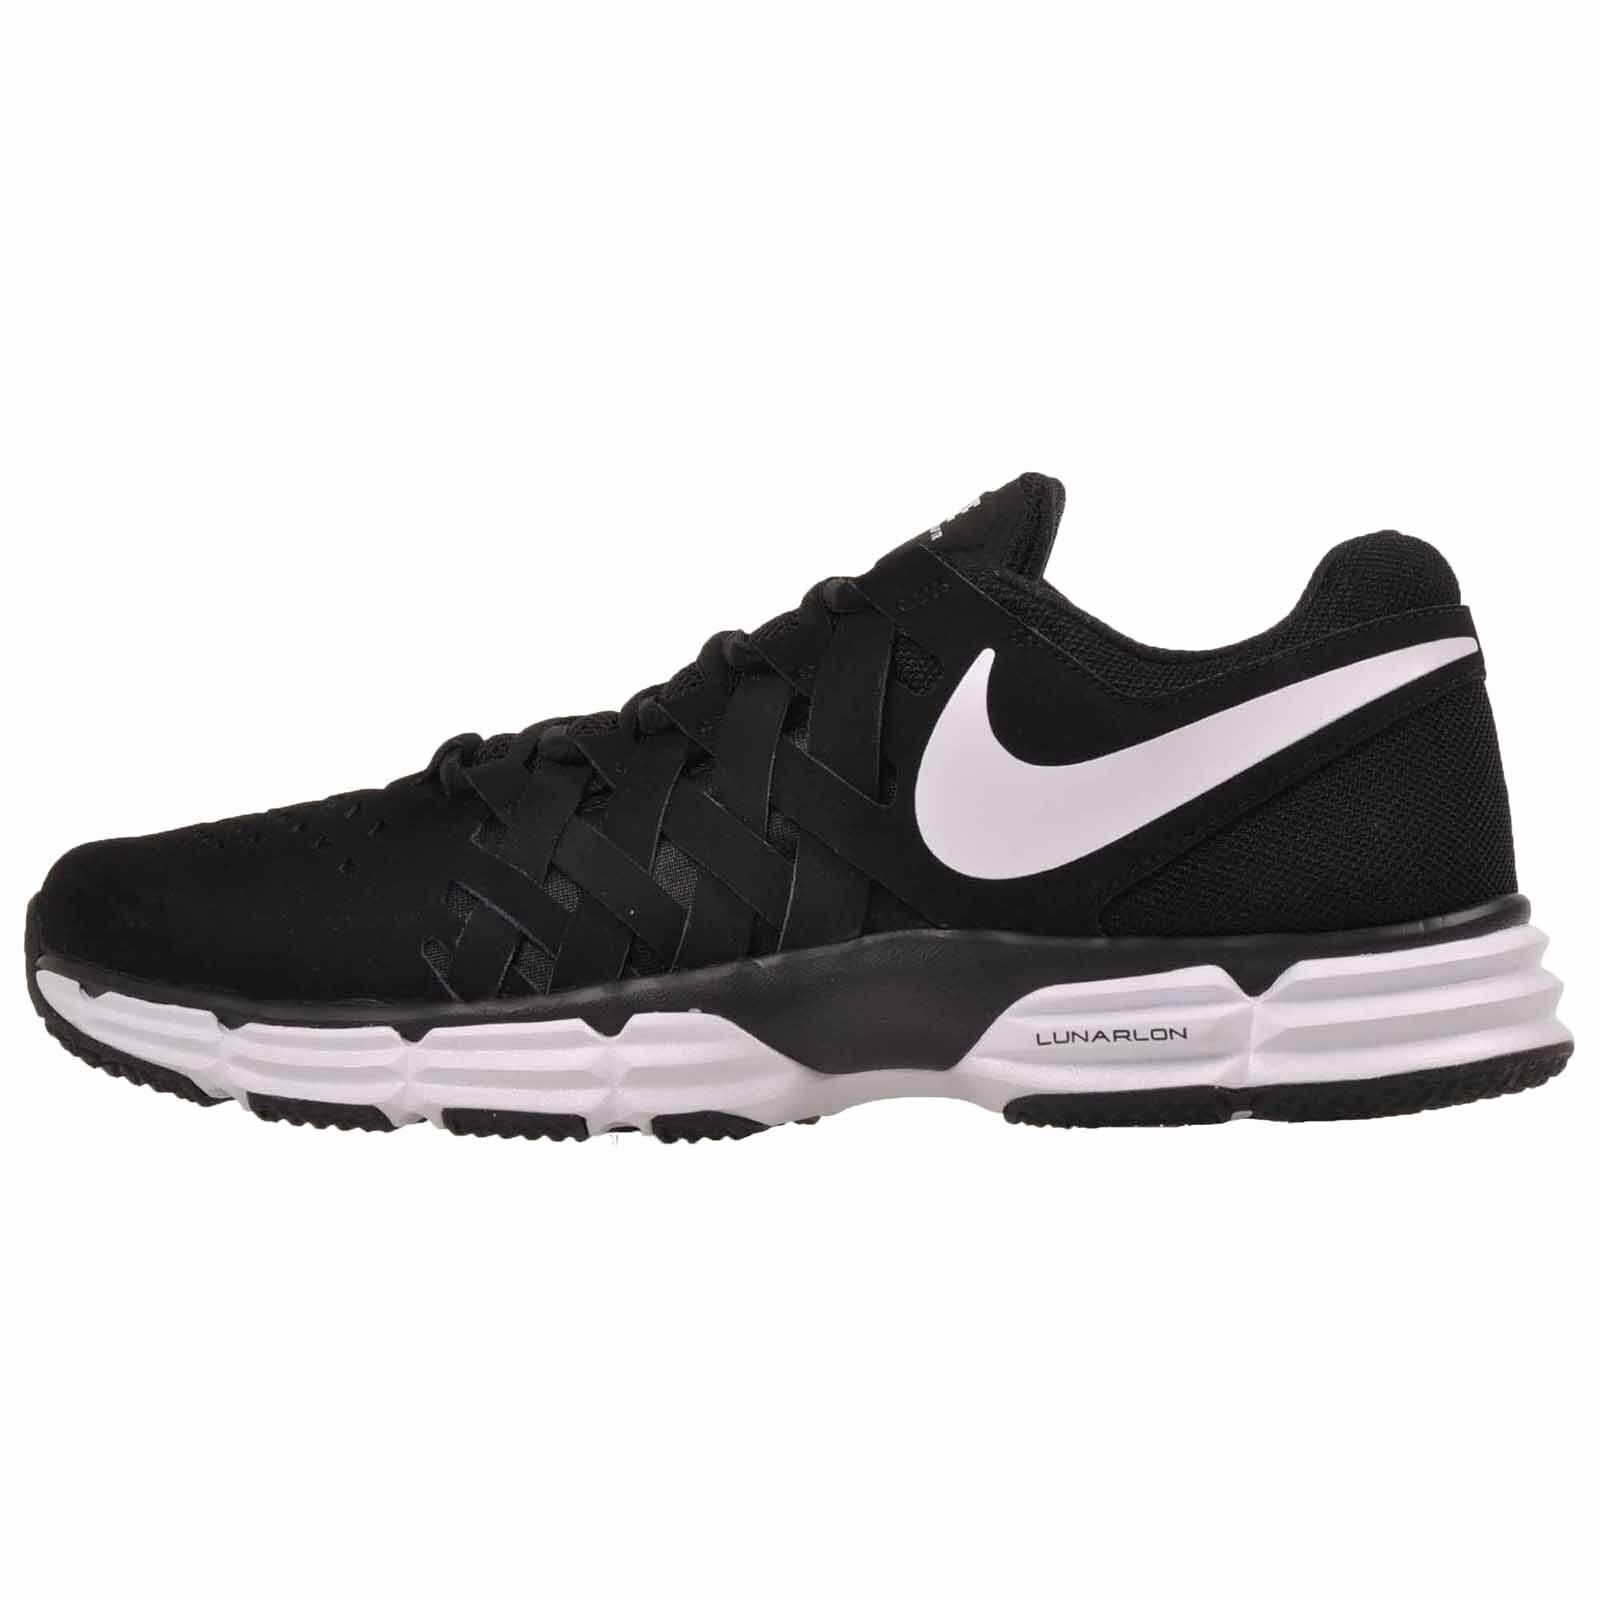 Nike Lunar Fingertrap TR Cross Training Mens shoes Black White NWOB 898066-001